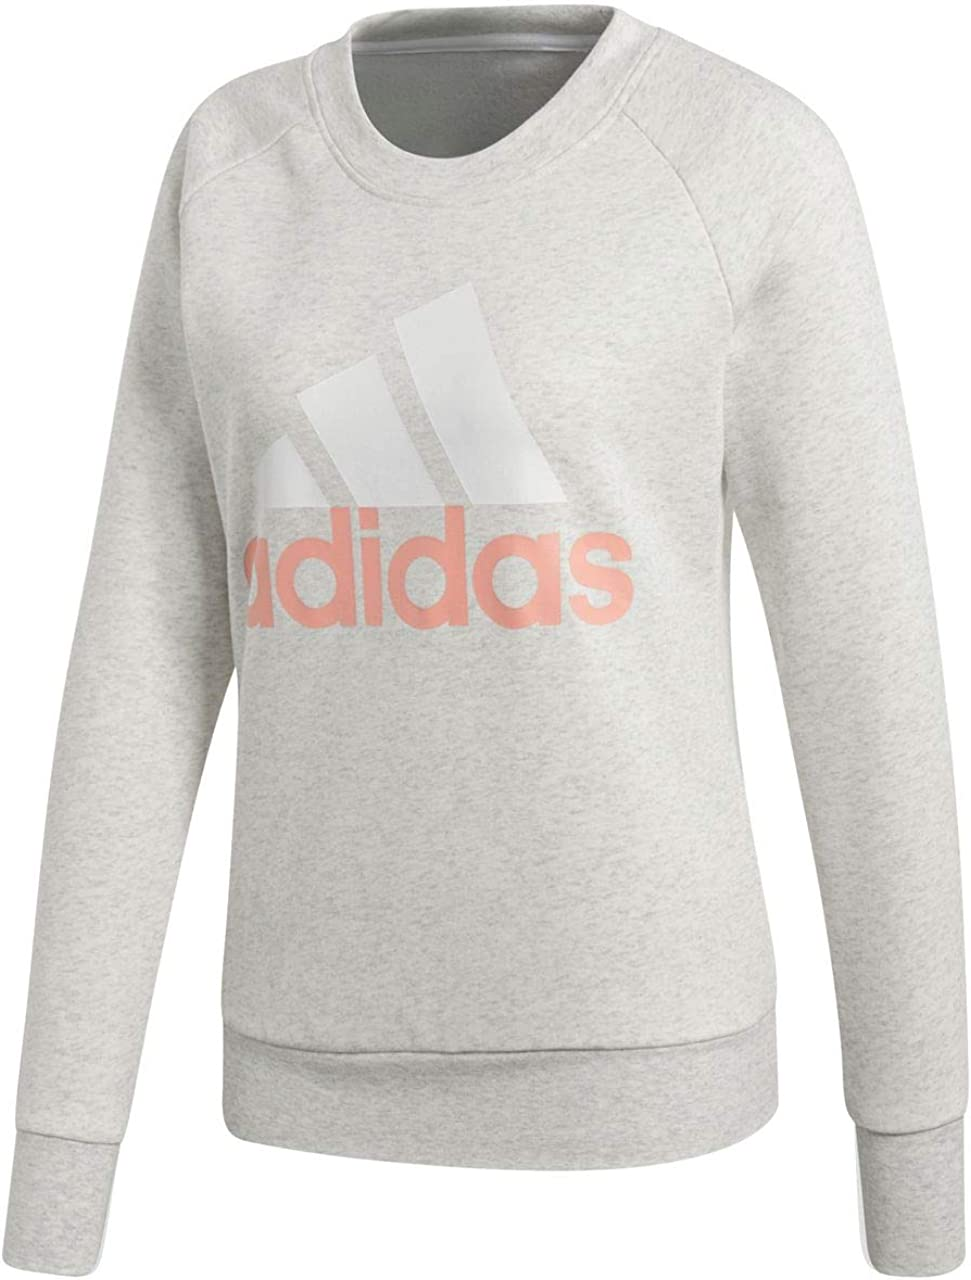 TALLA XS. adidas ESS Lin Sweat, Mujer, Color